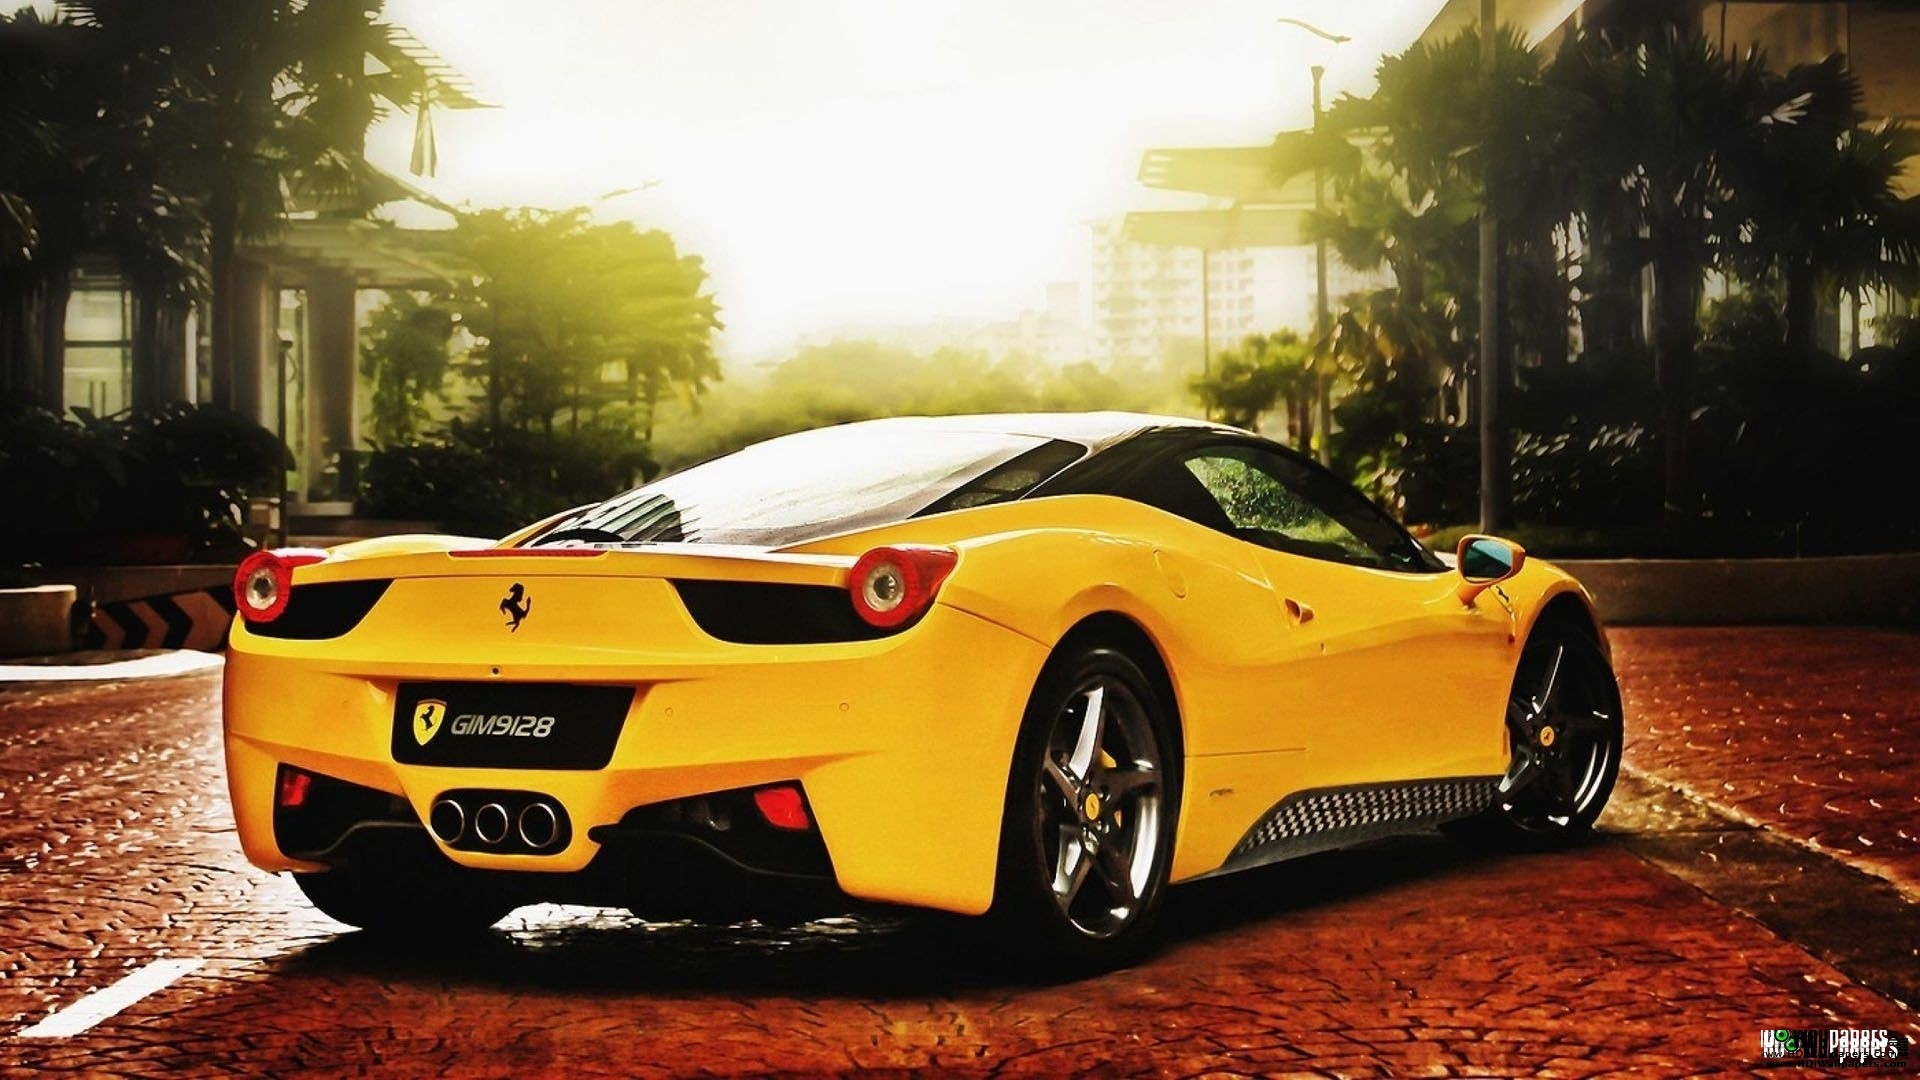 Res: 1920x1080, ferrari cars wallpaper image ferrari wallpaper desktop